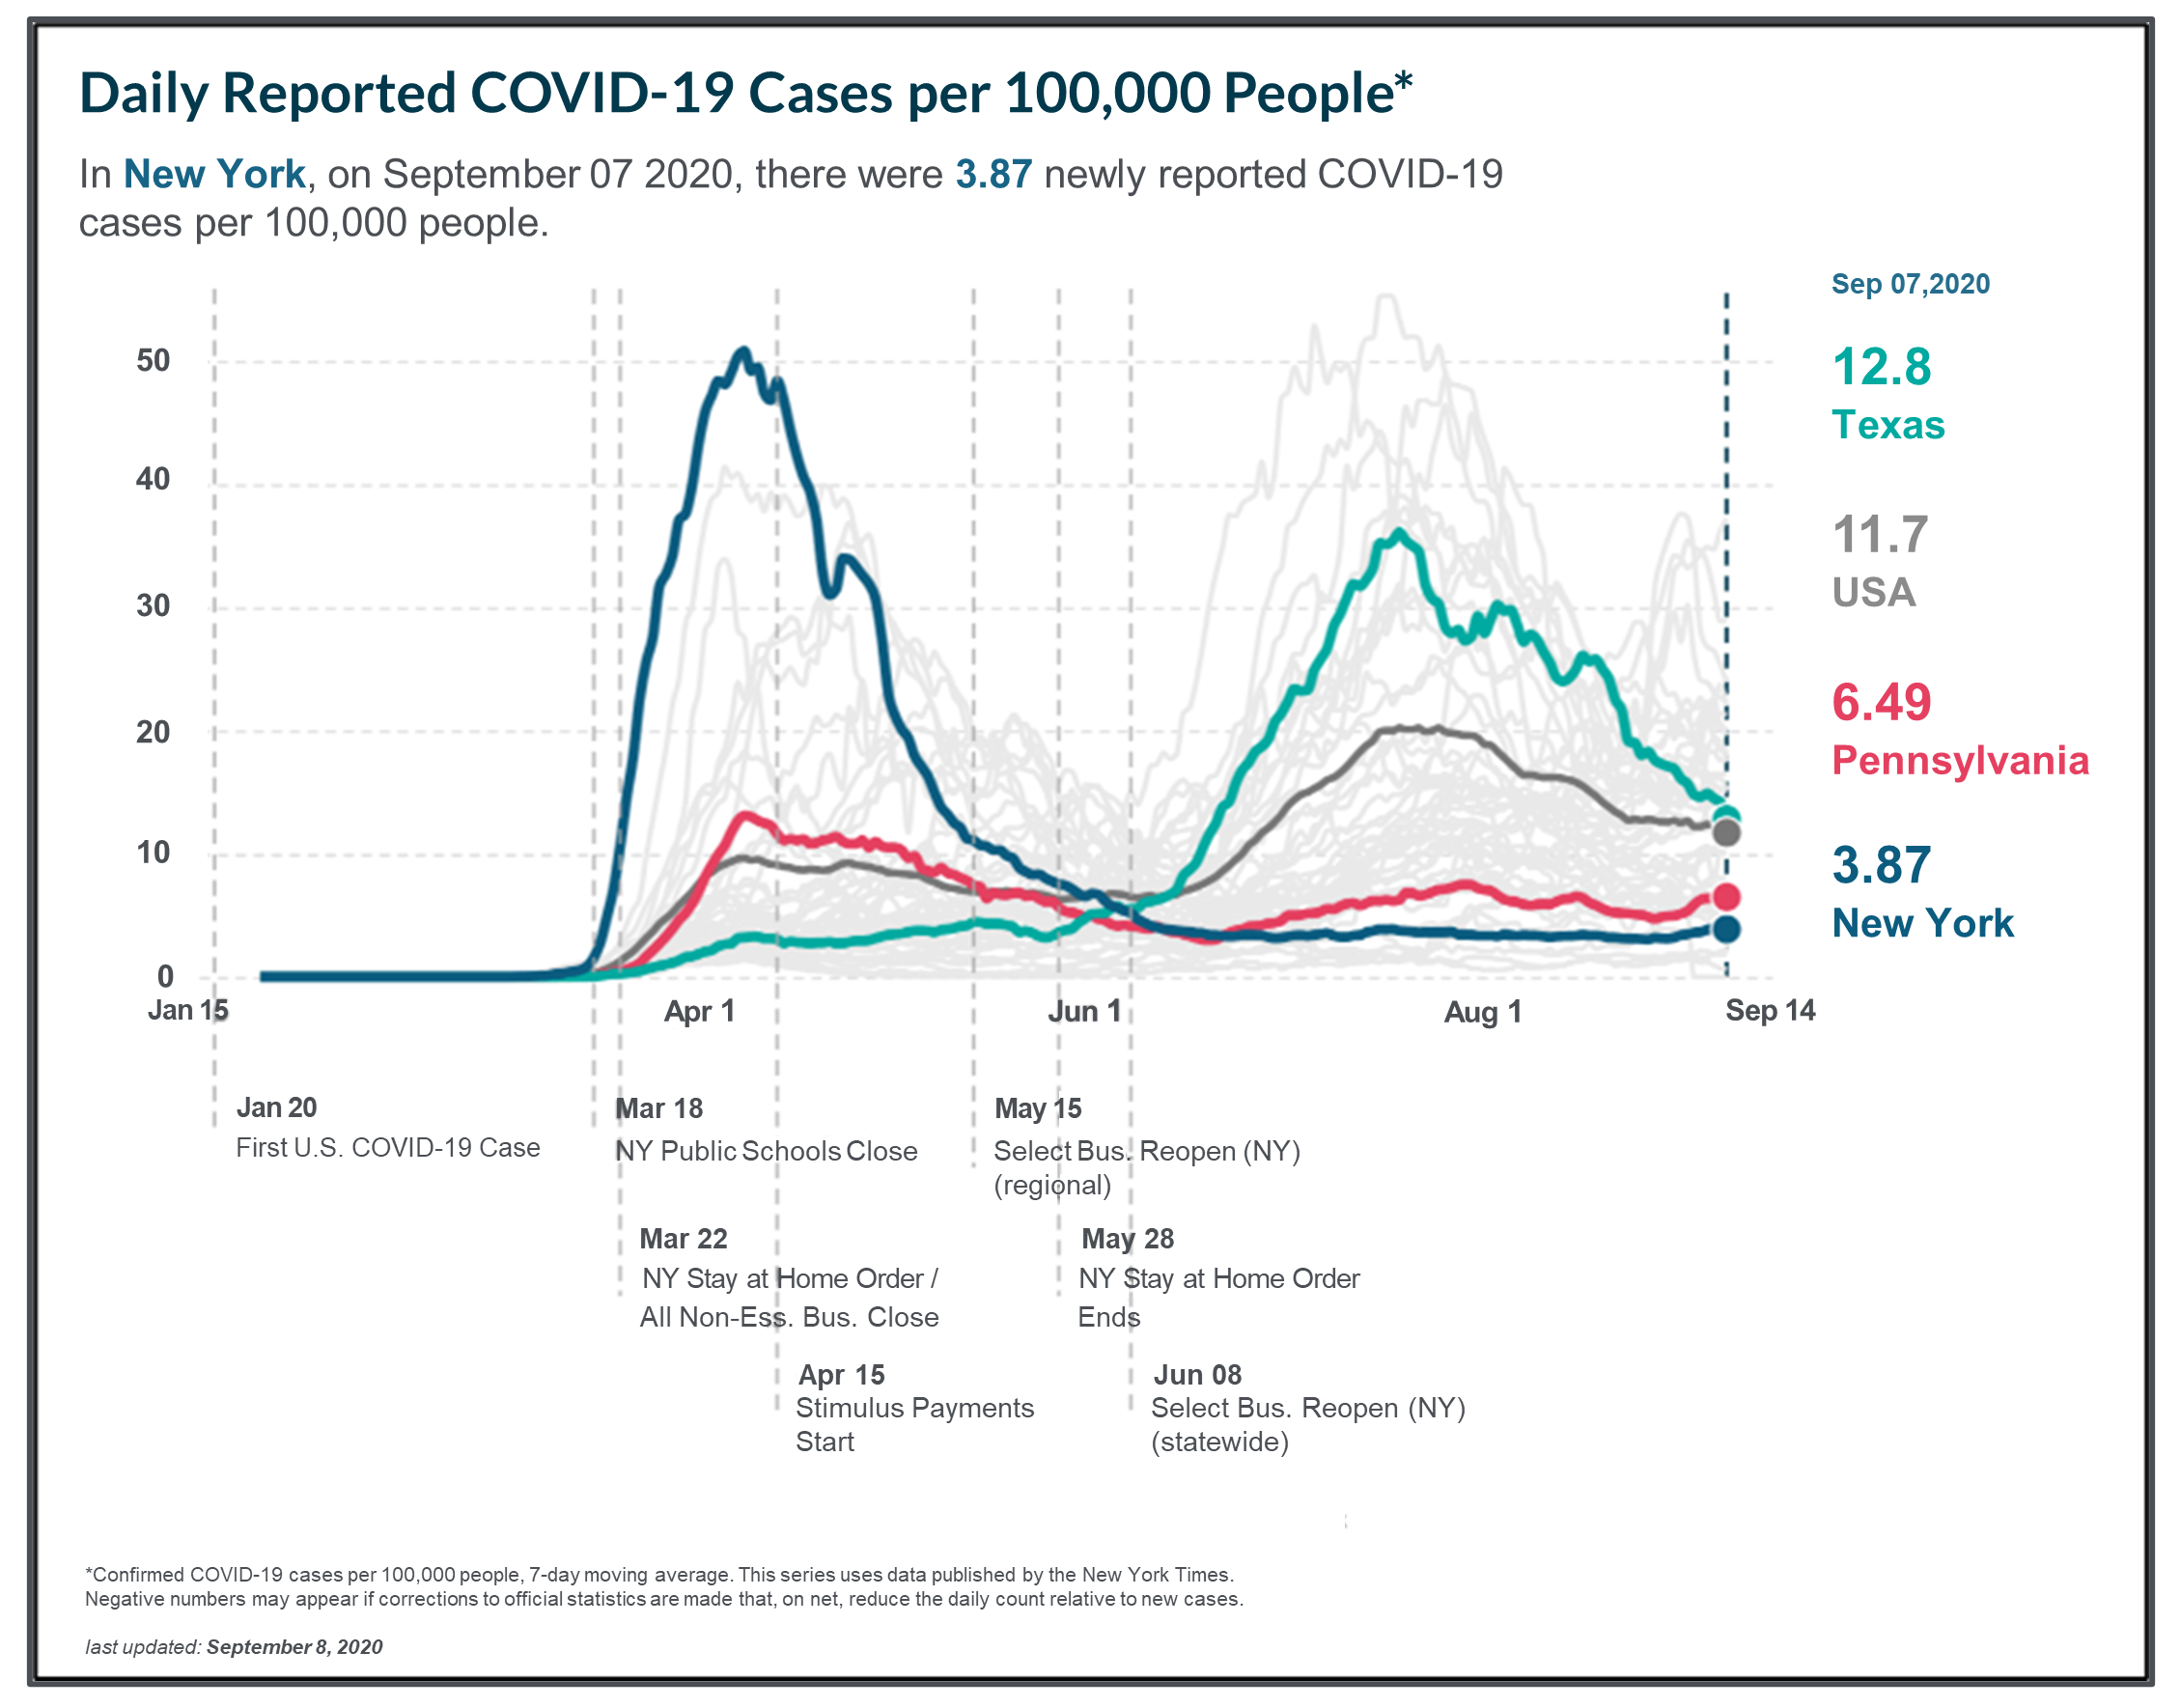 Daily Reported COVID-19 Cases per 100,000 People